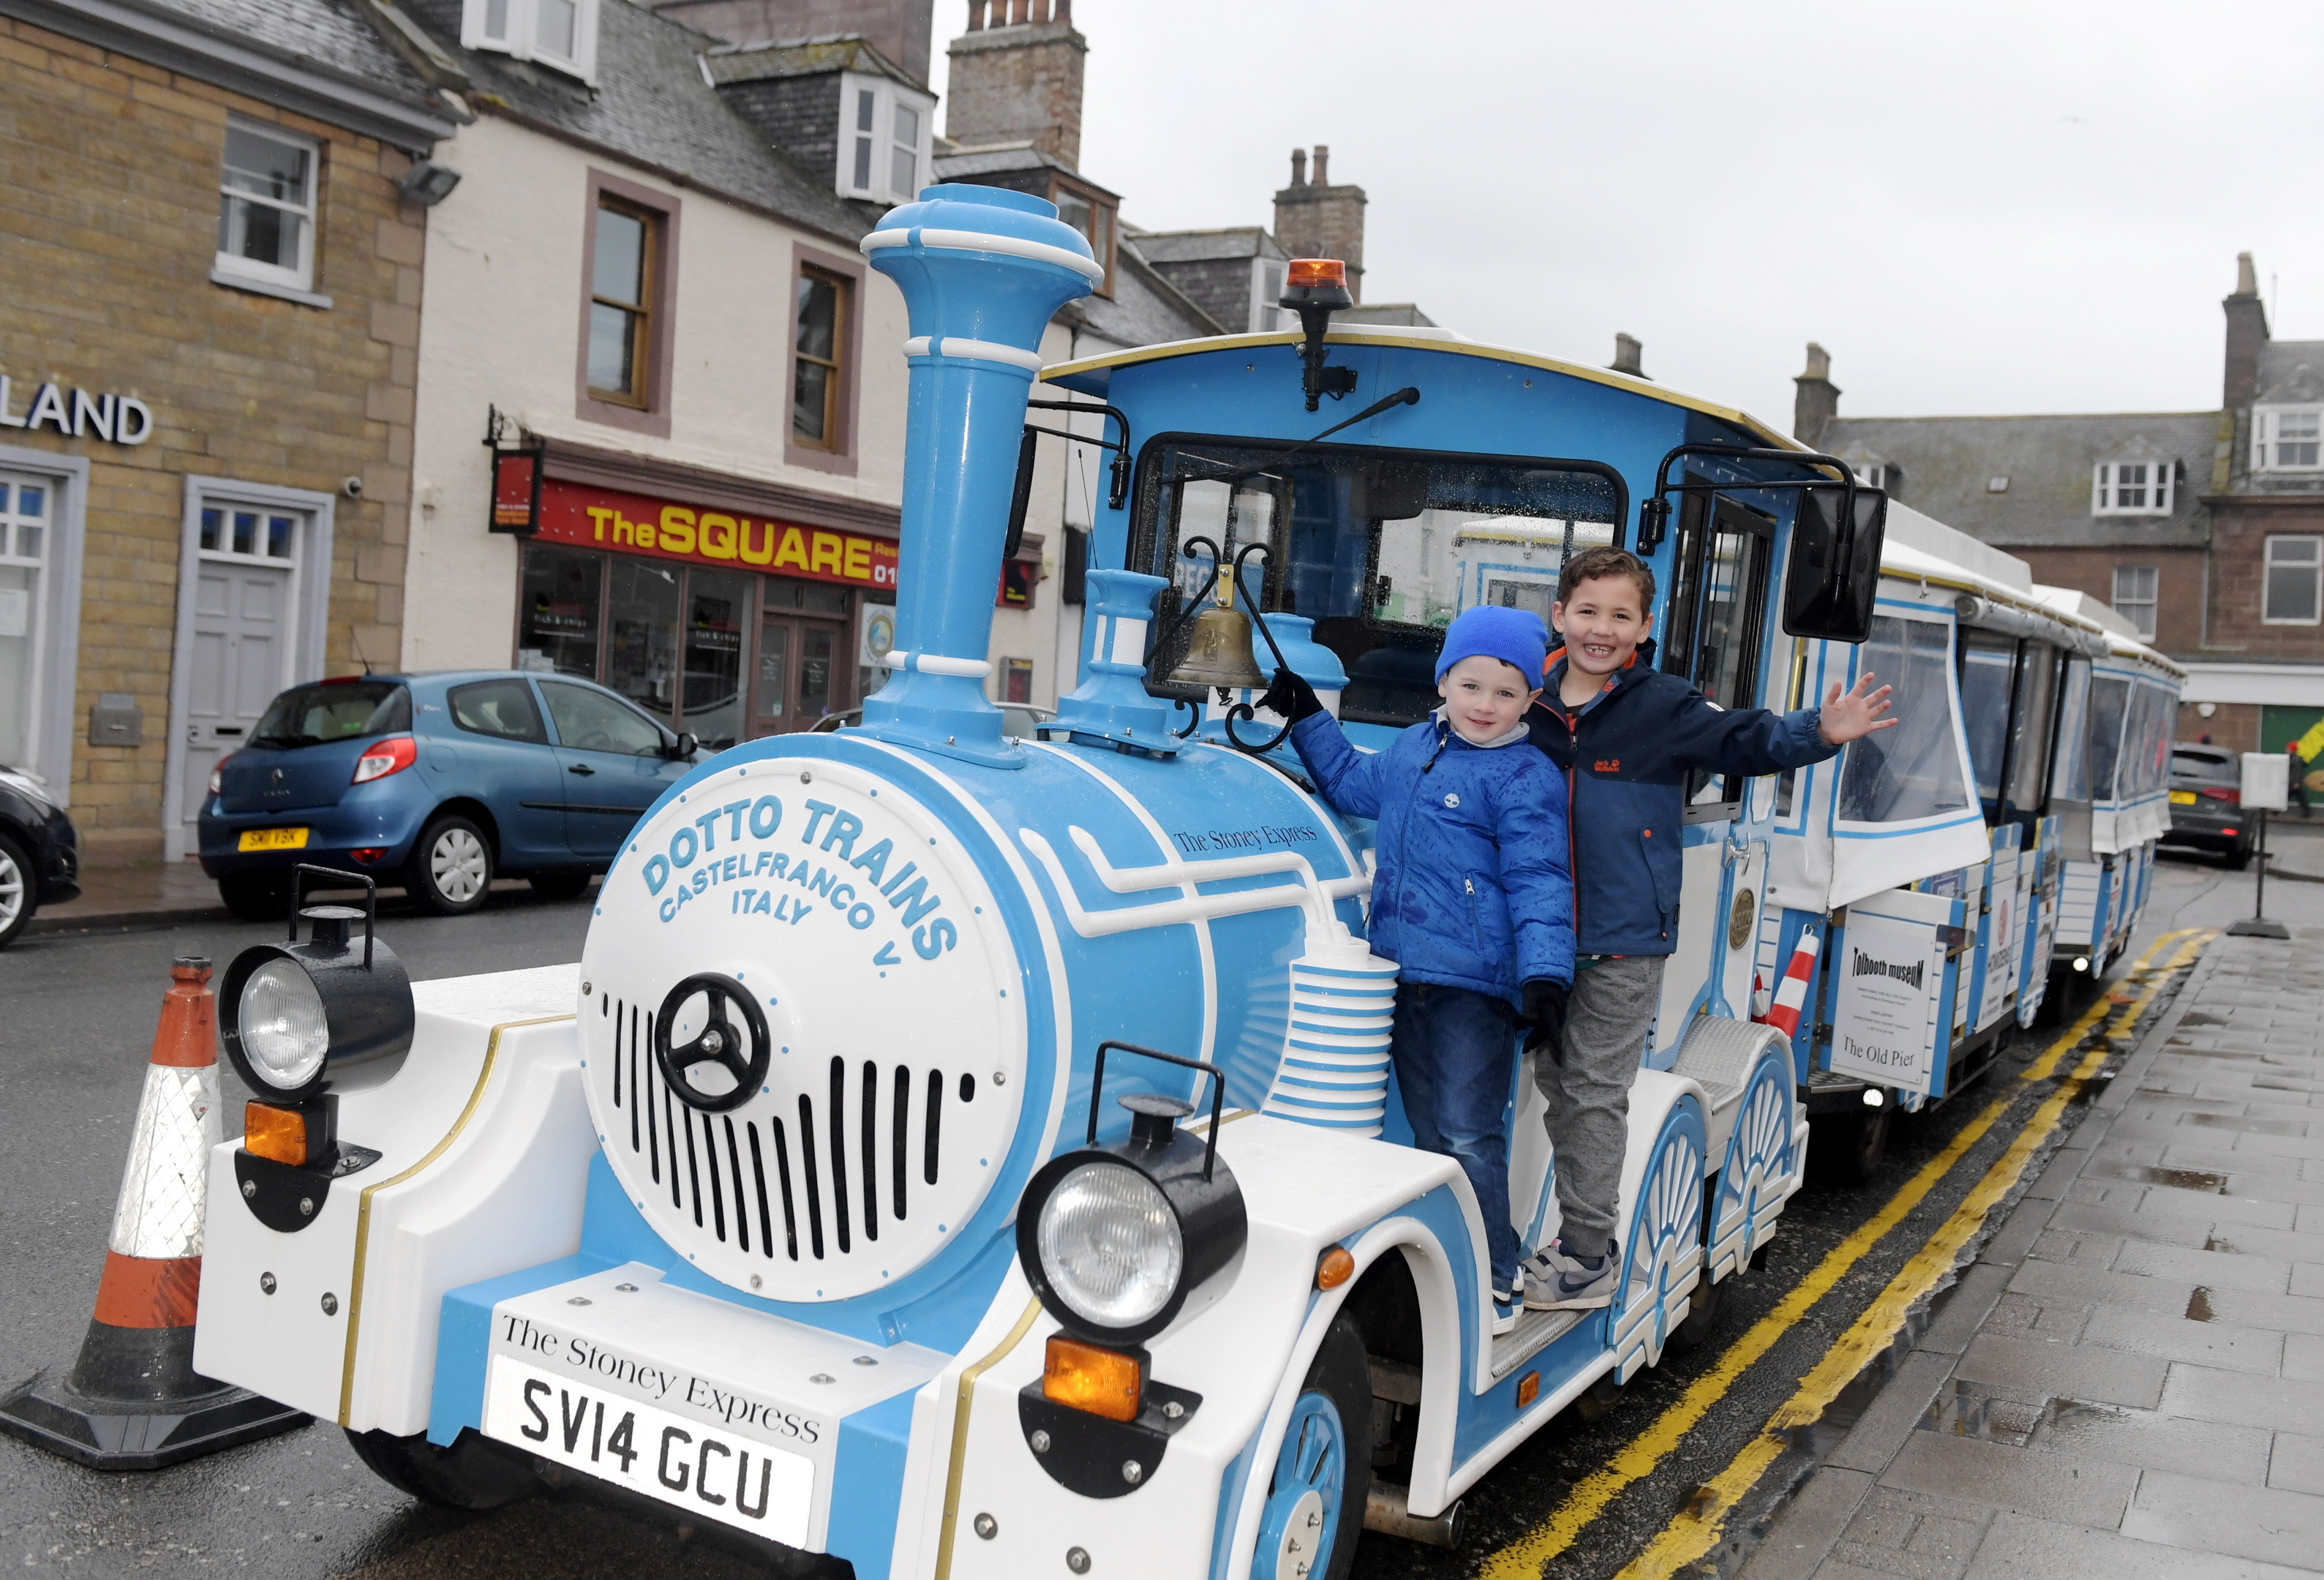 Harry Wilson and Ellis Crawford on the Land Train.